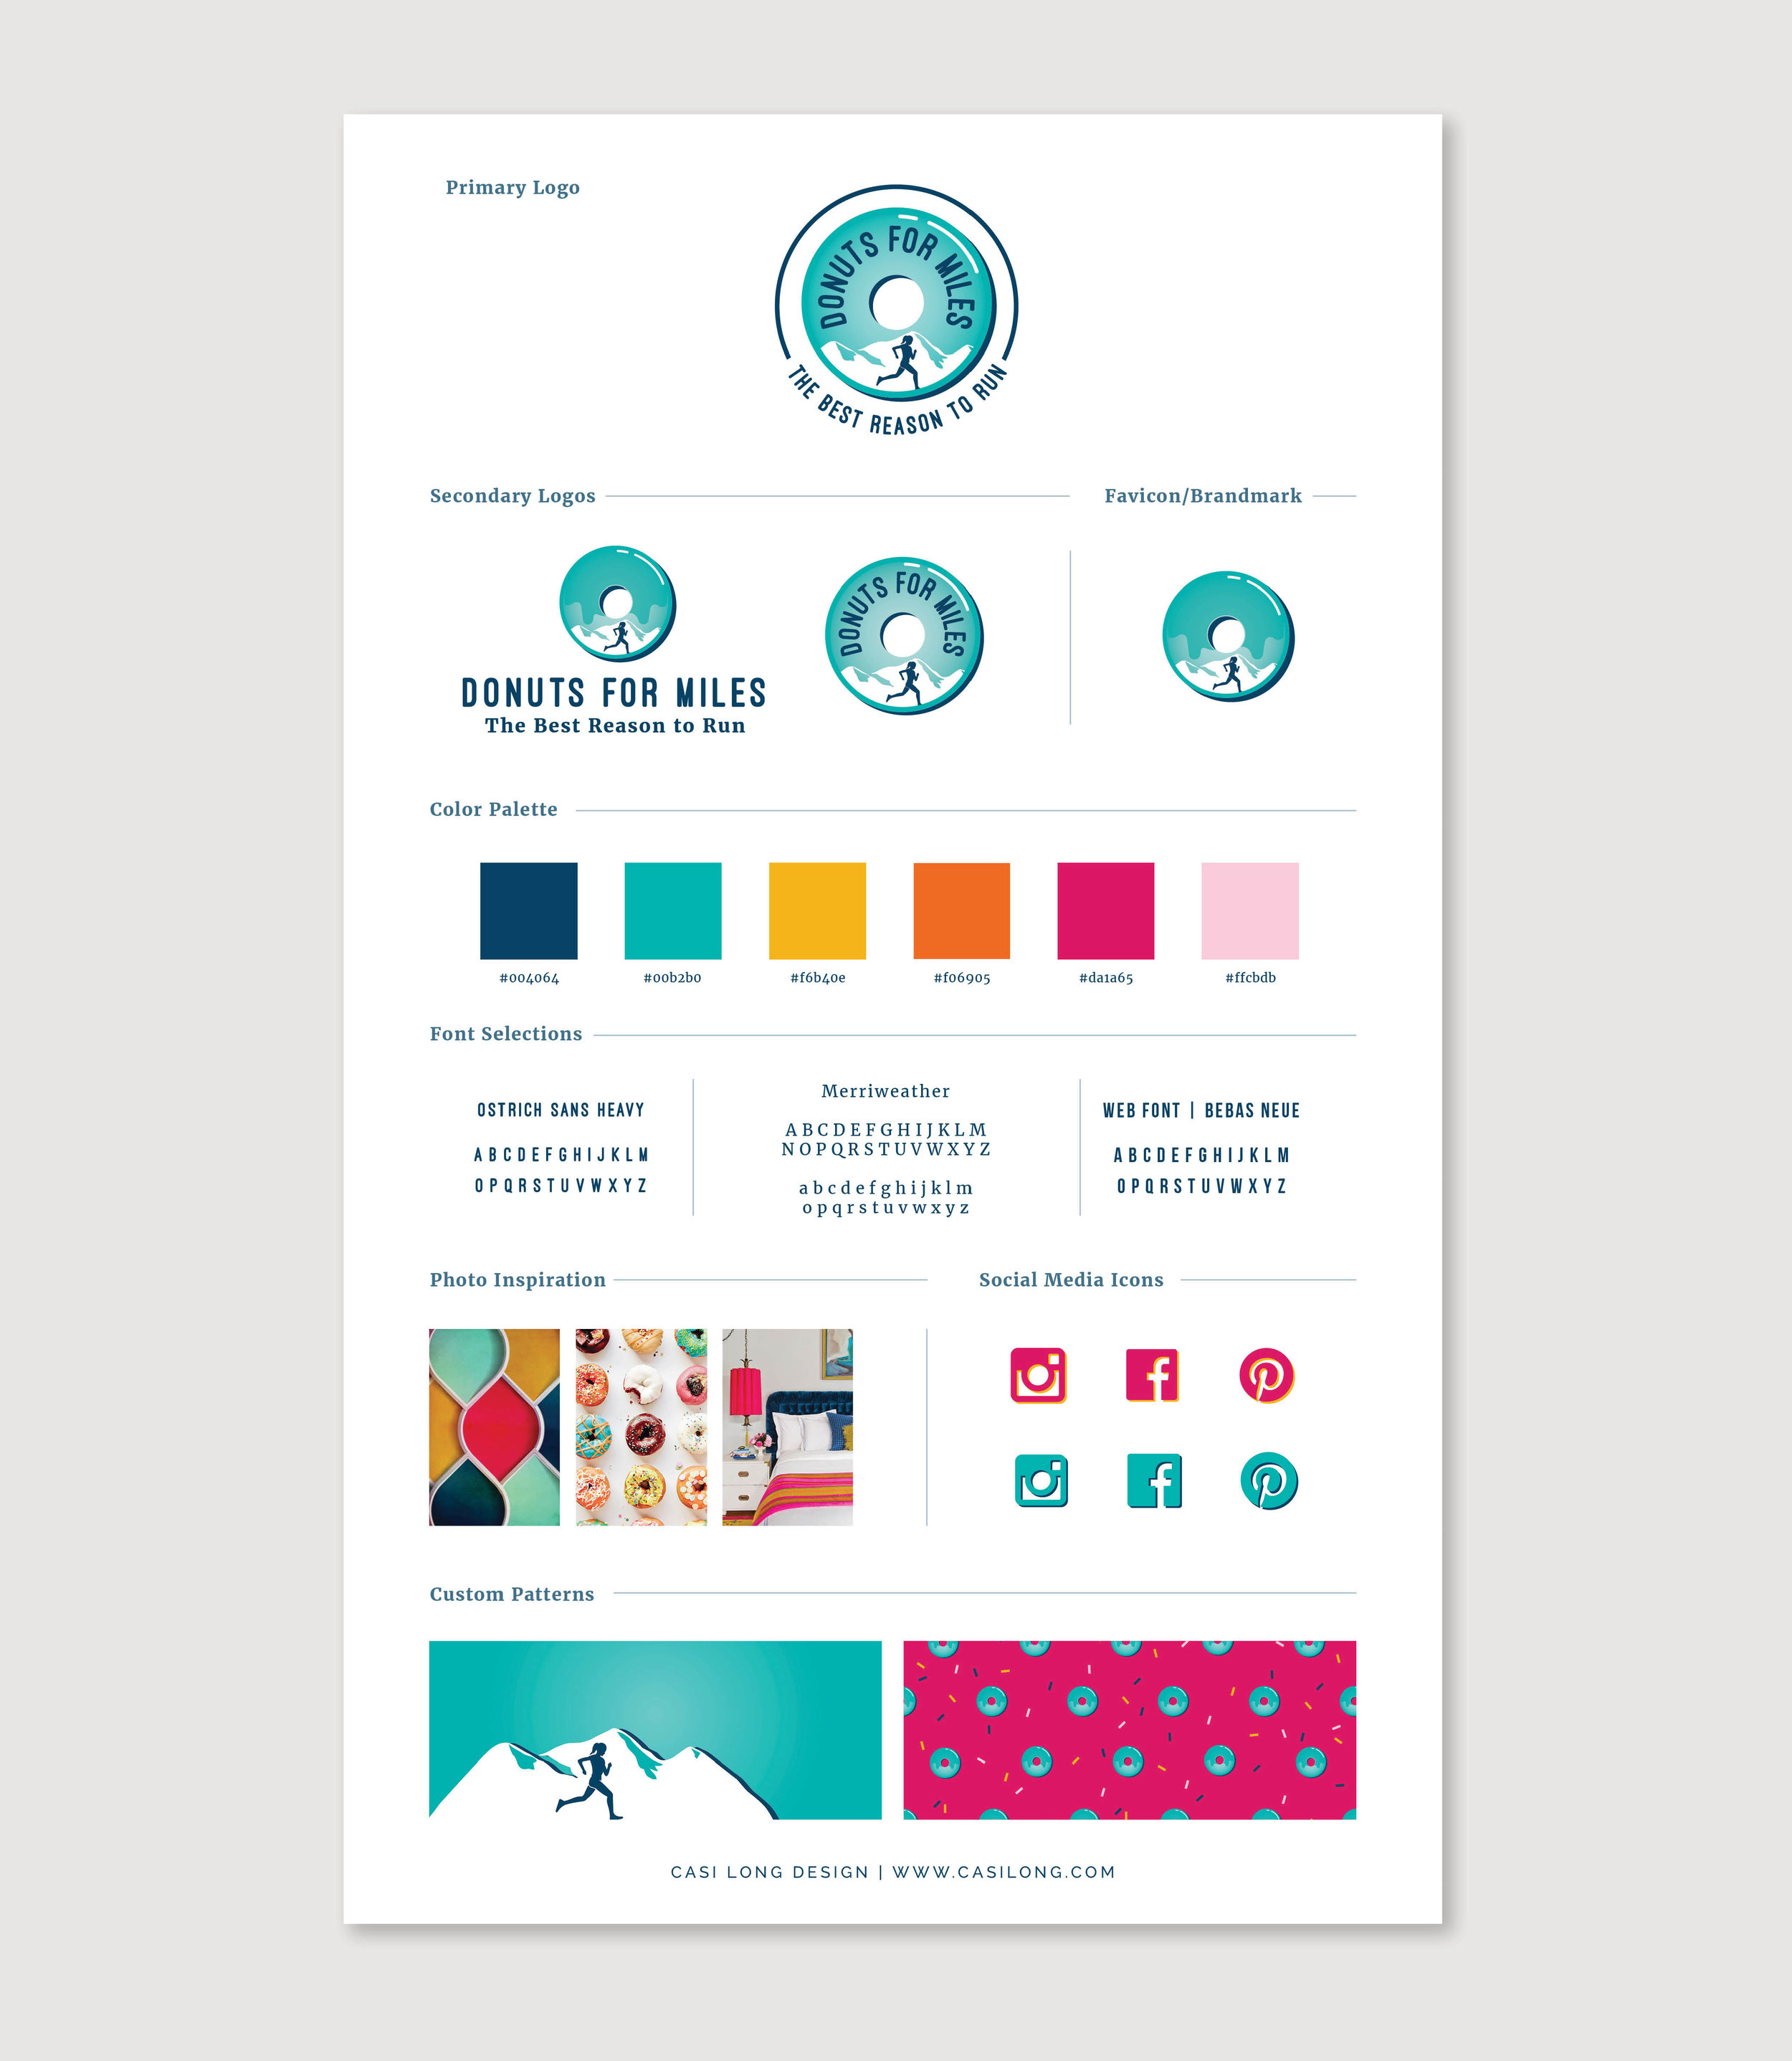 Donuts for Miles branding by Casi Long Design | casilong.com .jpg